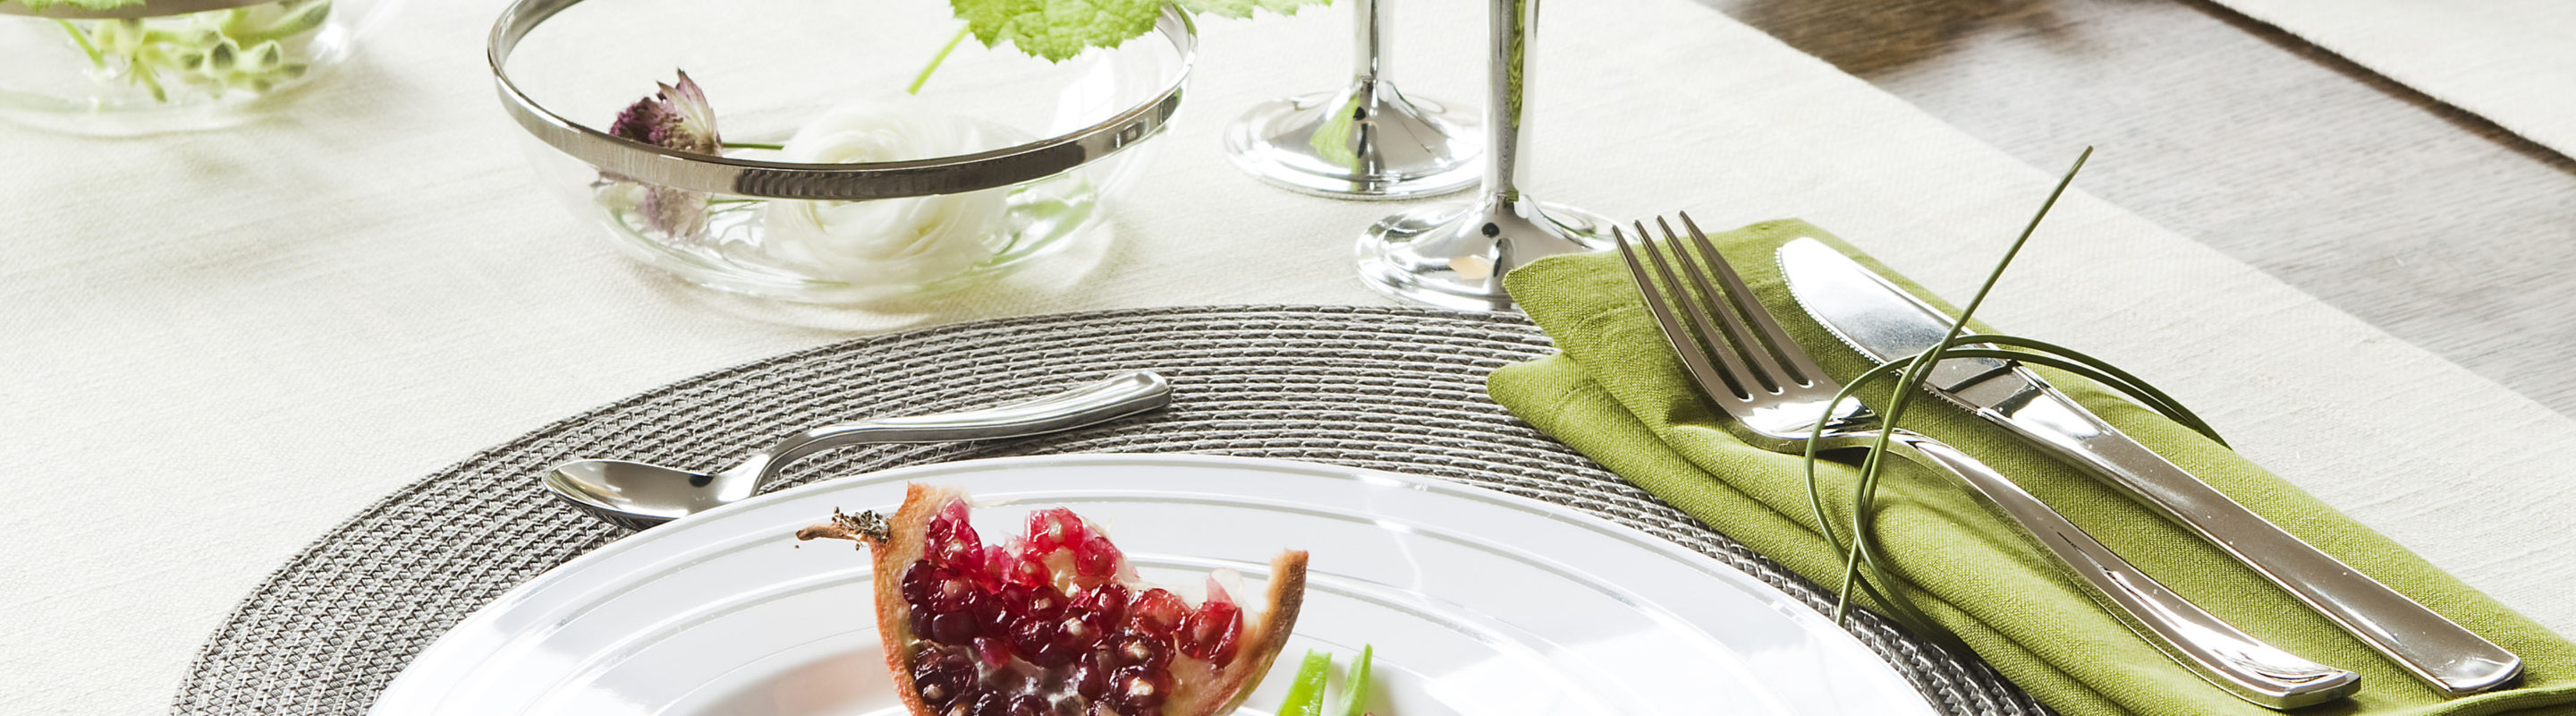 High-end tableware Solutions by Sabert